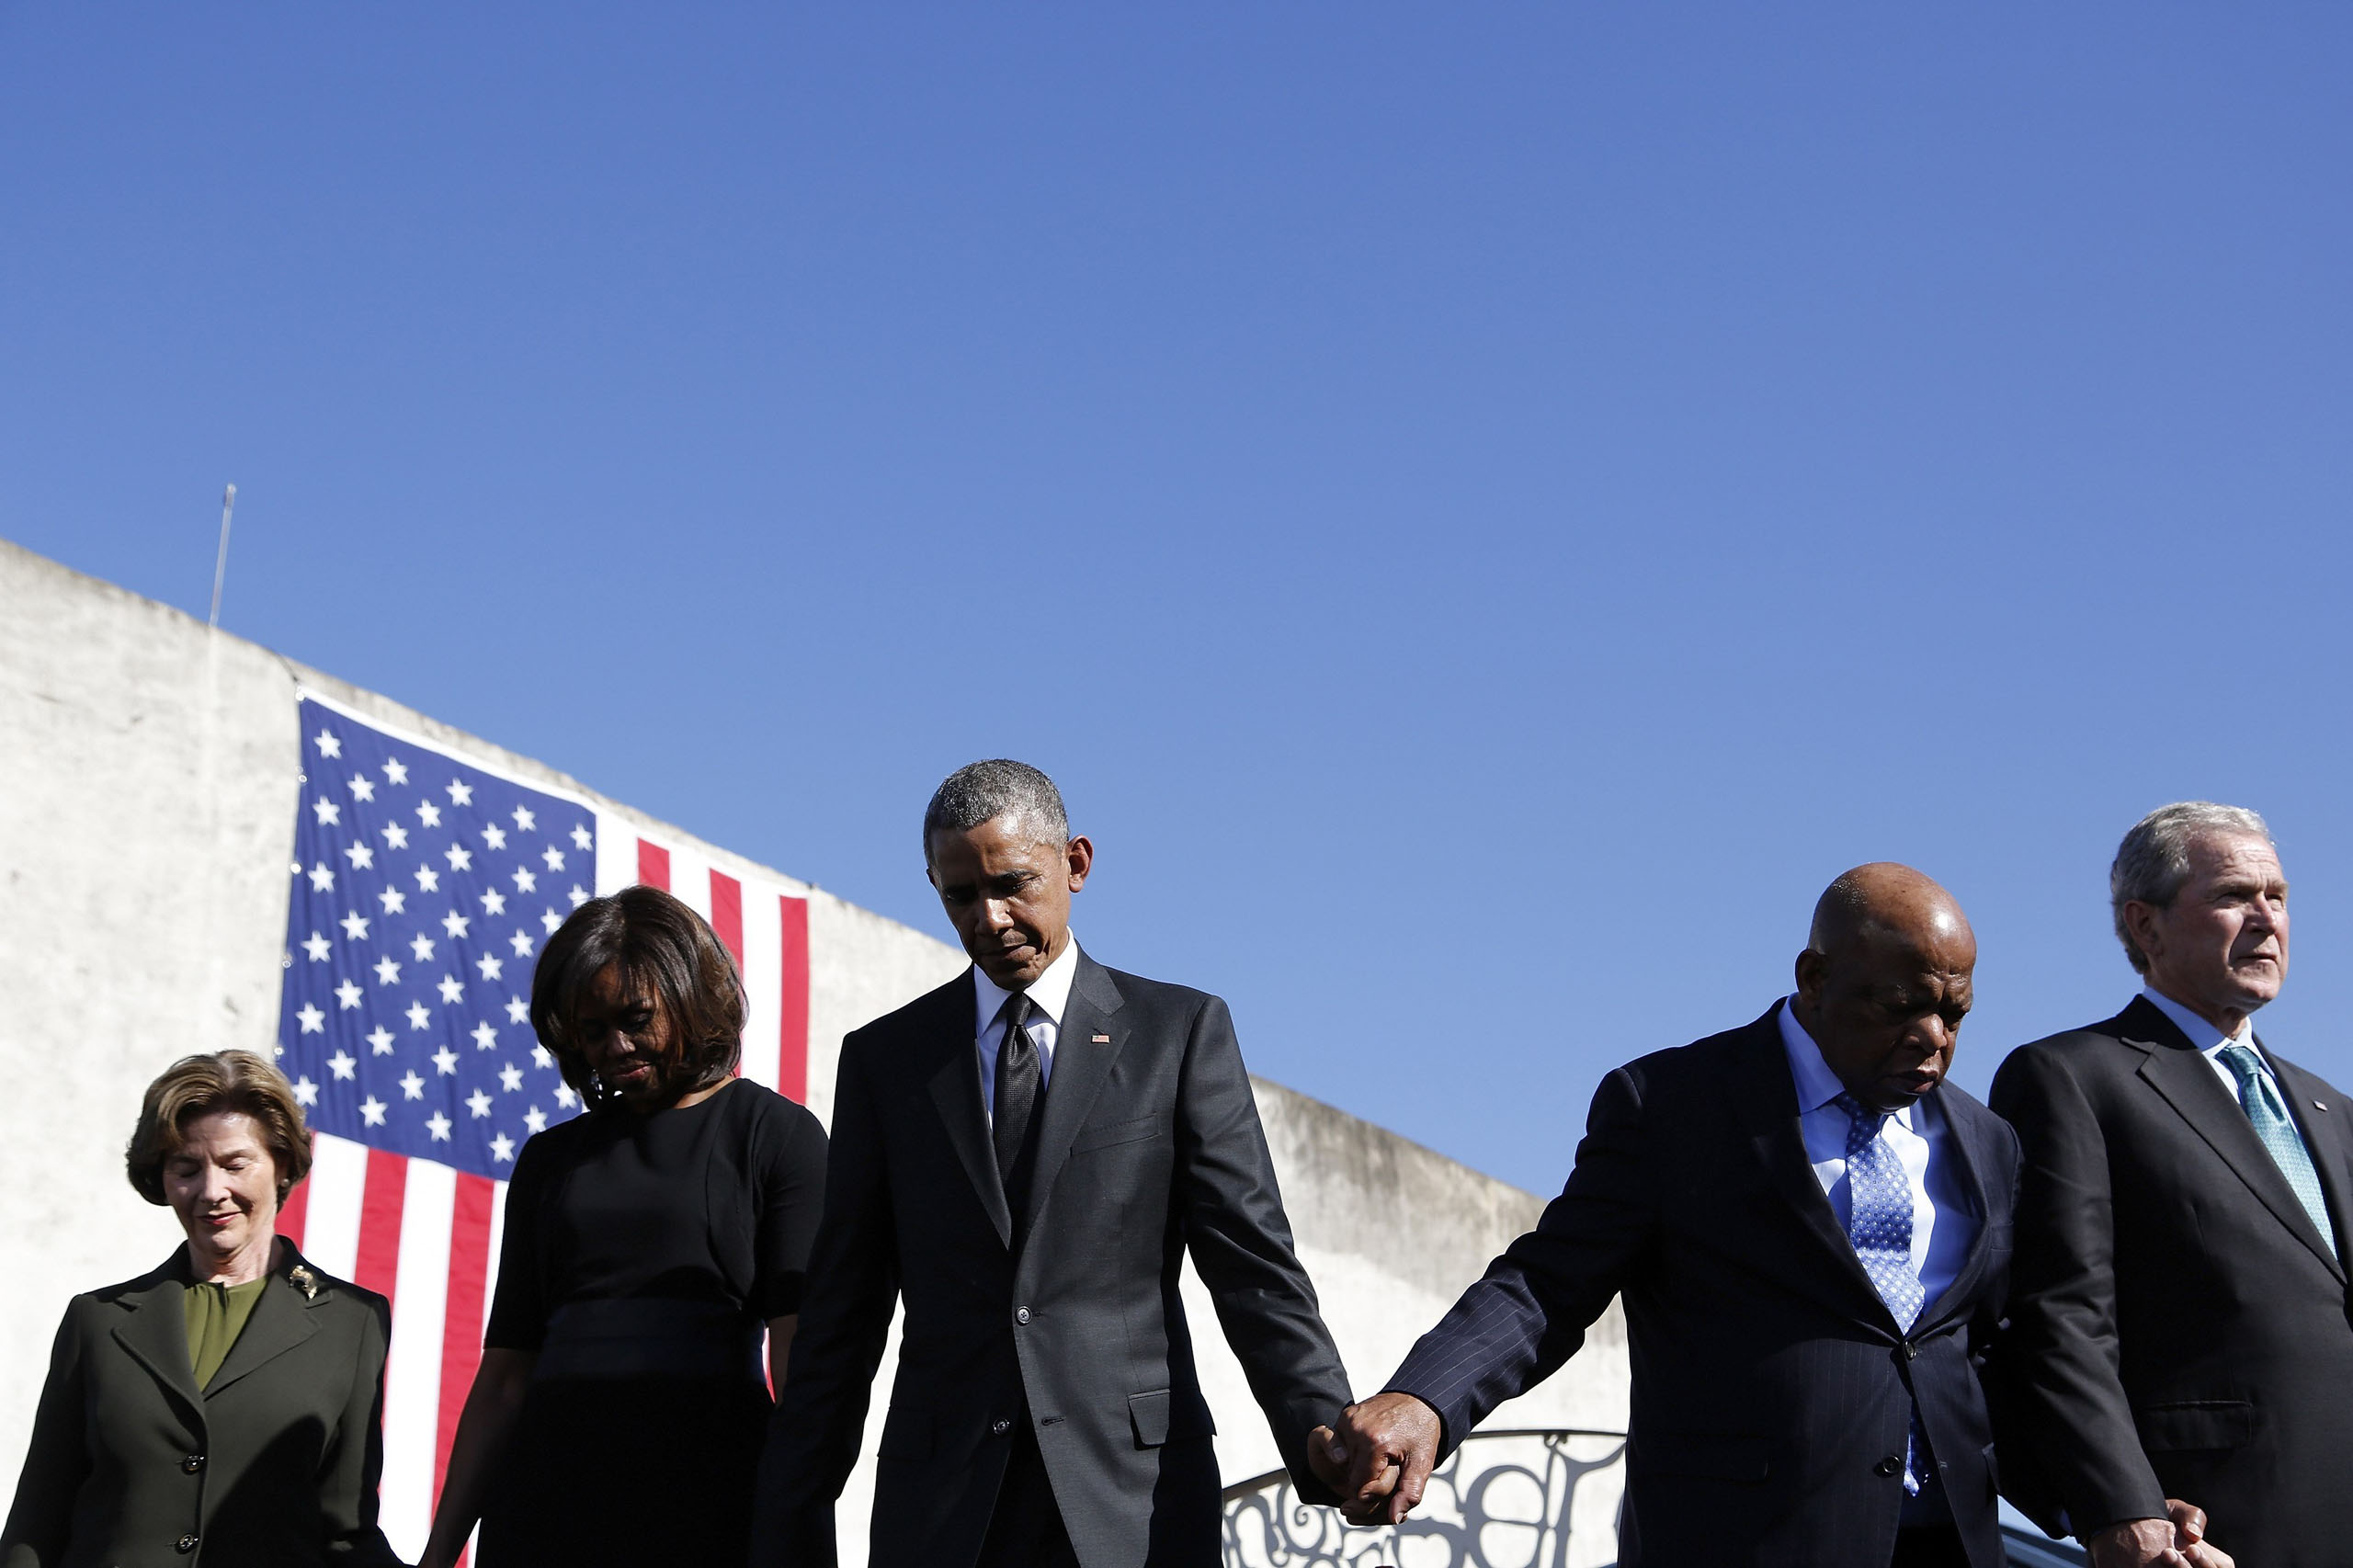 President Barack Obama and first lady Michelle Obama hold hands with former President George W. Bush and former first lady Laura Bush, and Rep. John Lewis during commemoration of the 50th anniversary of the 'Bloody Sunday' historical civil rights march at the Edmund Pettus Bridge in Selma, Ala. on March 7, 2015.